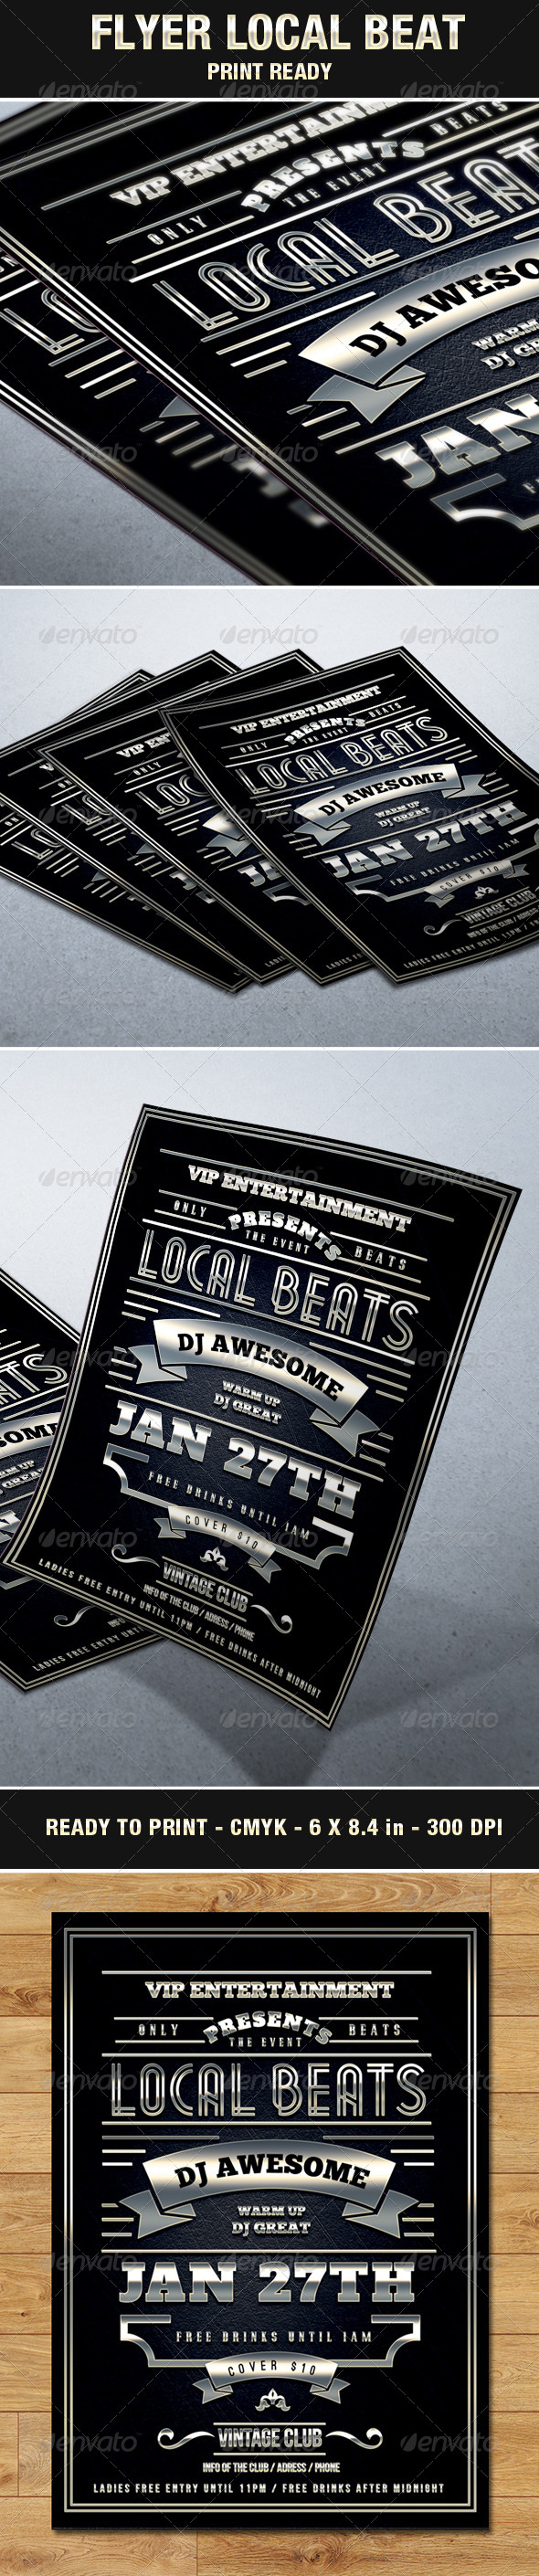 Vintage & Elegant Flyer Local Beats